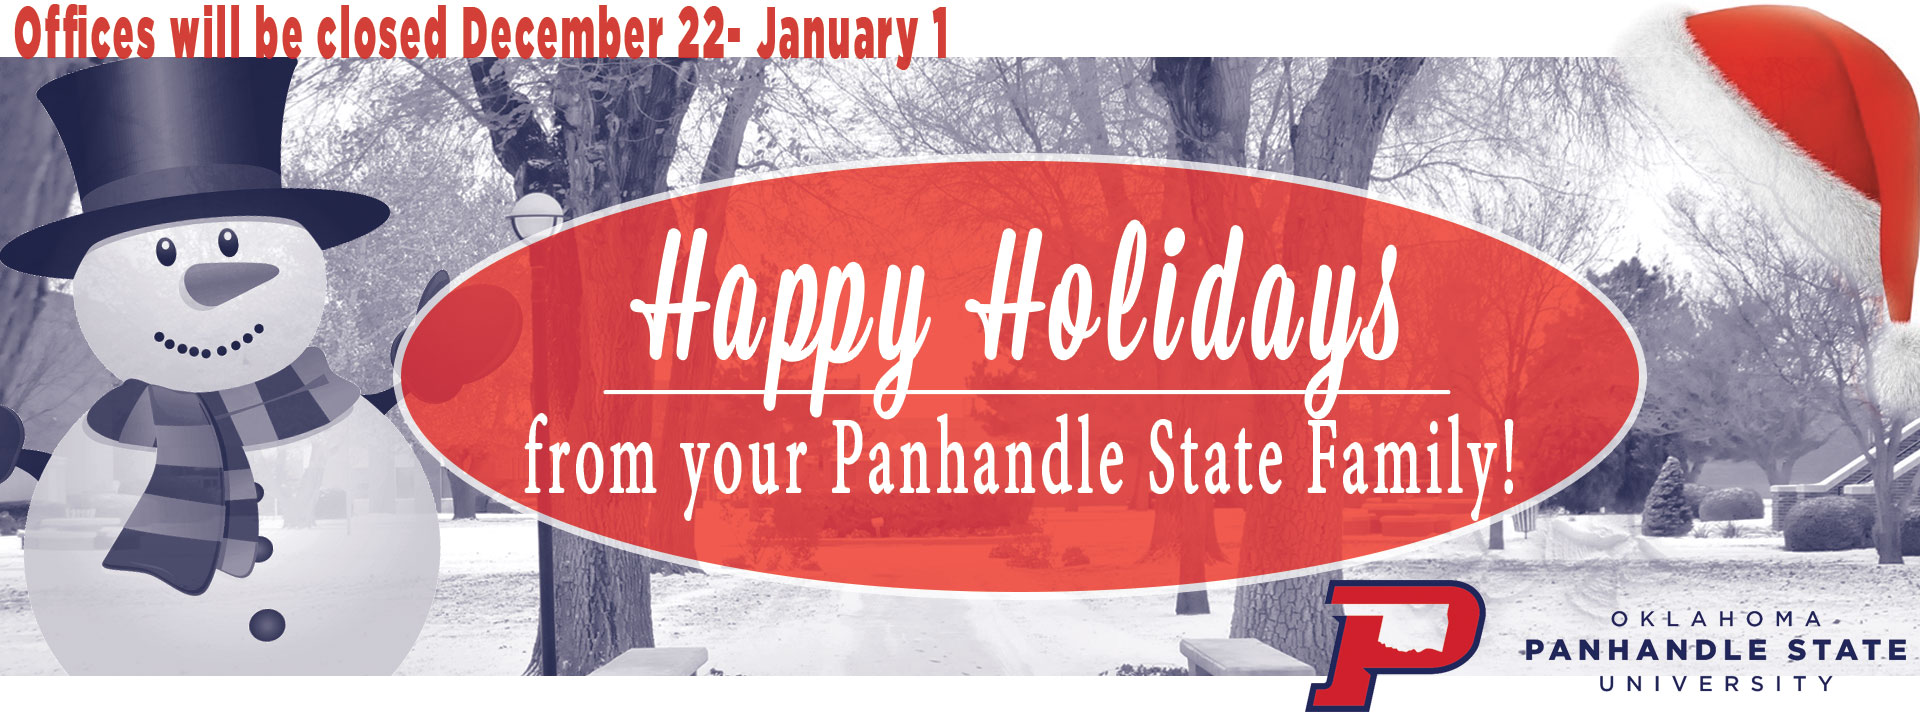 Happy Holidays from your panhandle state family - Offices will be closed December 22 - January 1